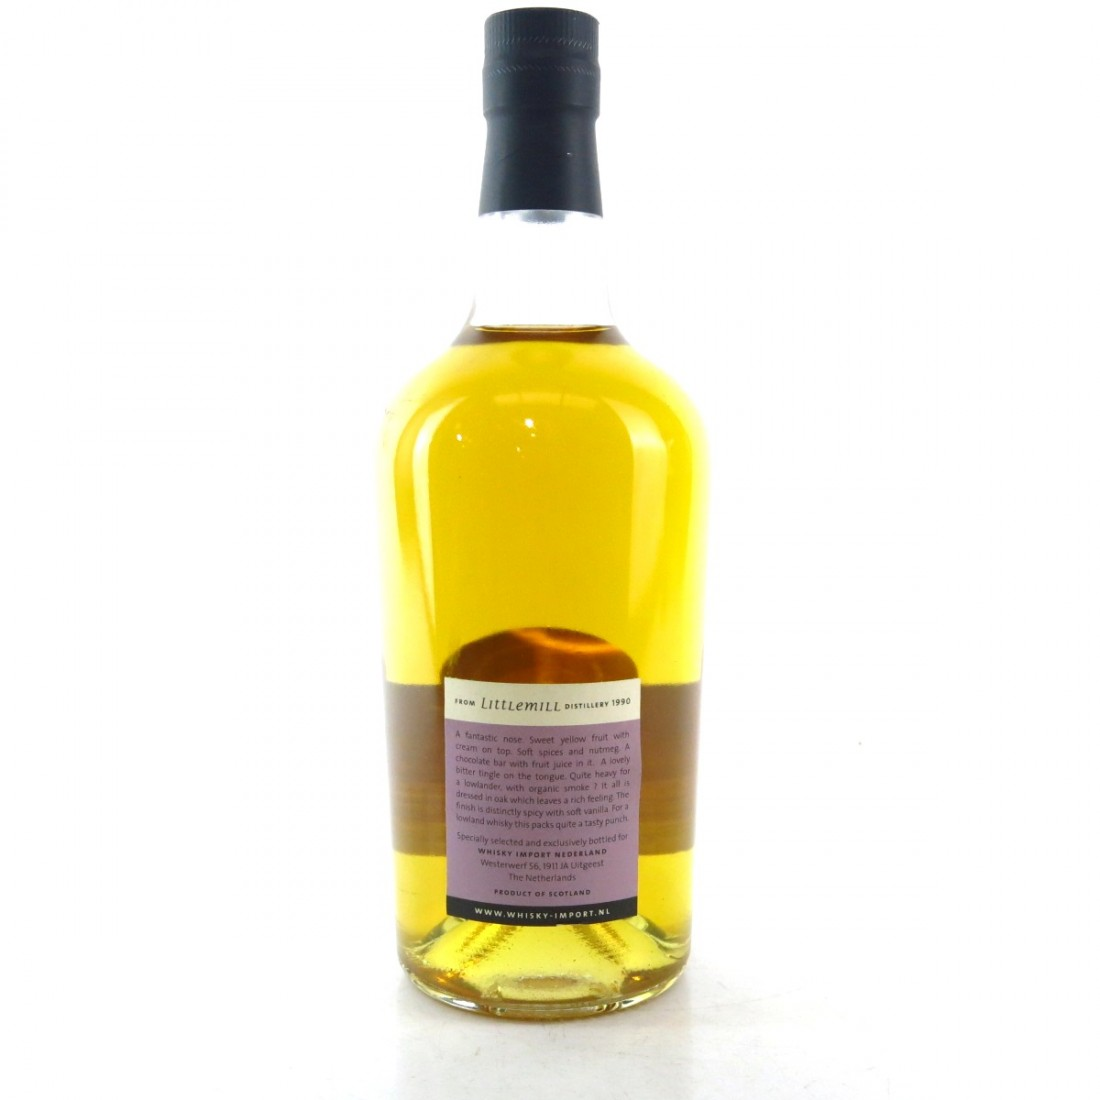 Littlemill 1990 Whisky Import NL 20 Year Old